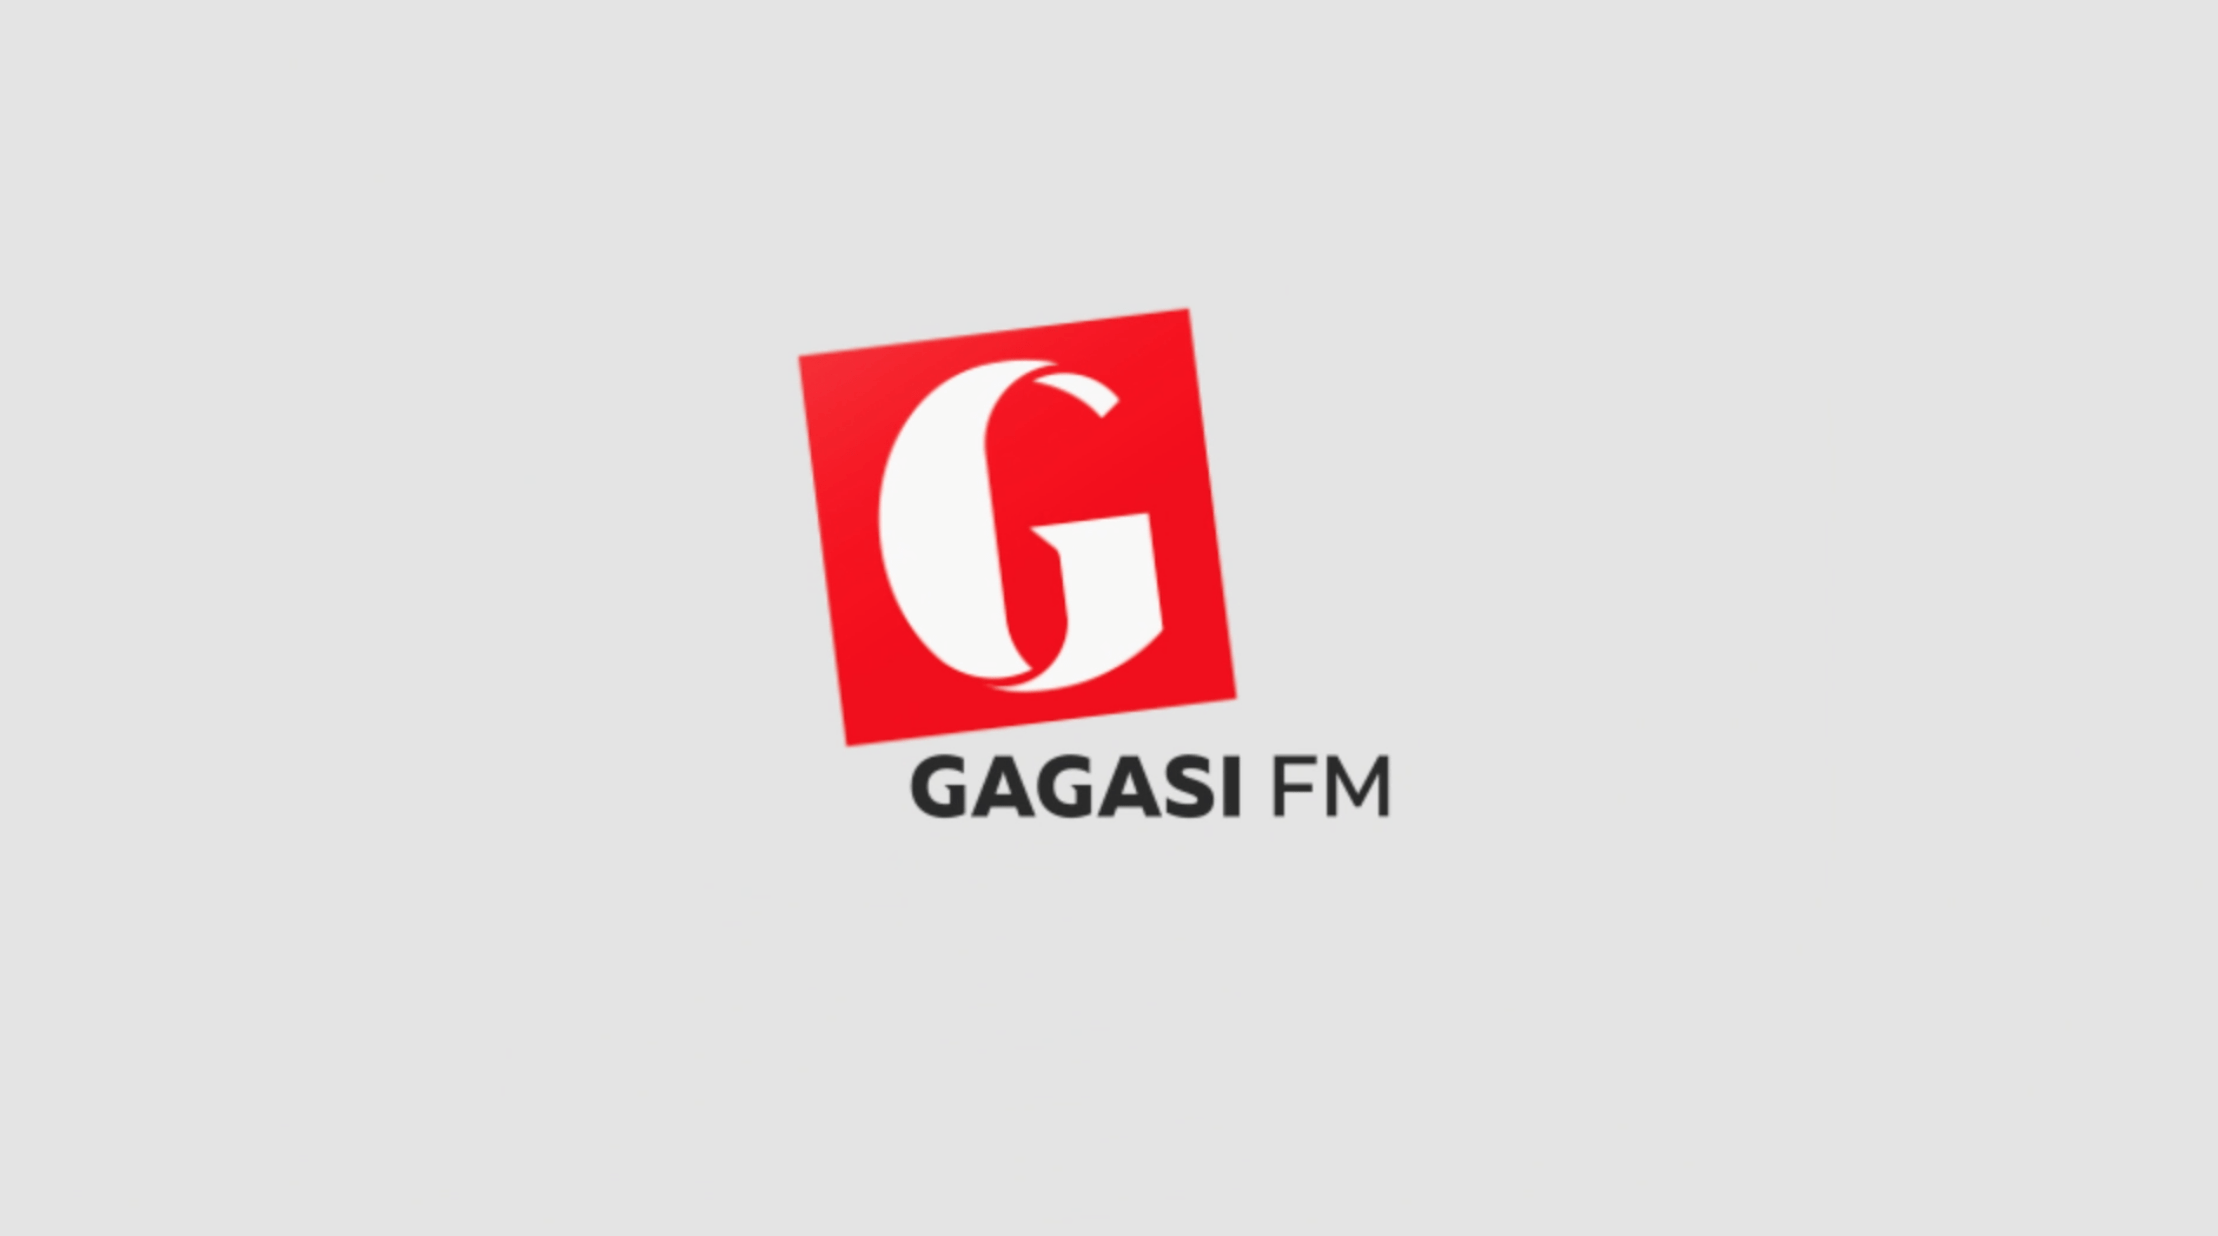 Gagasi FM Logo Video Intro